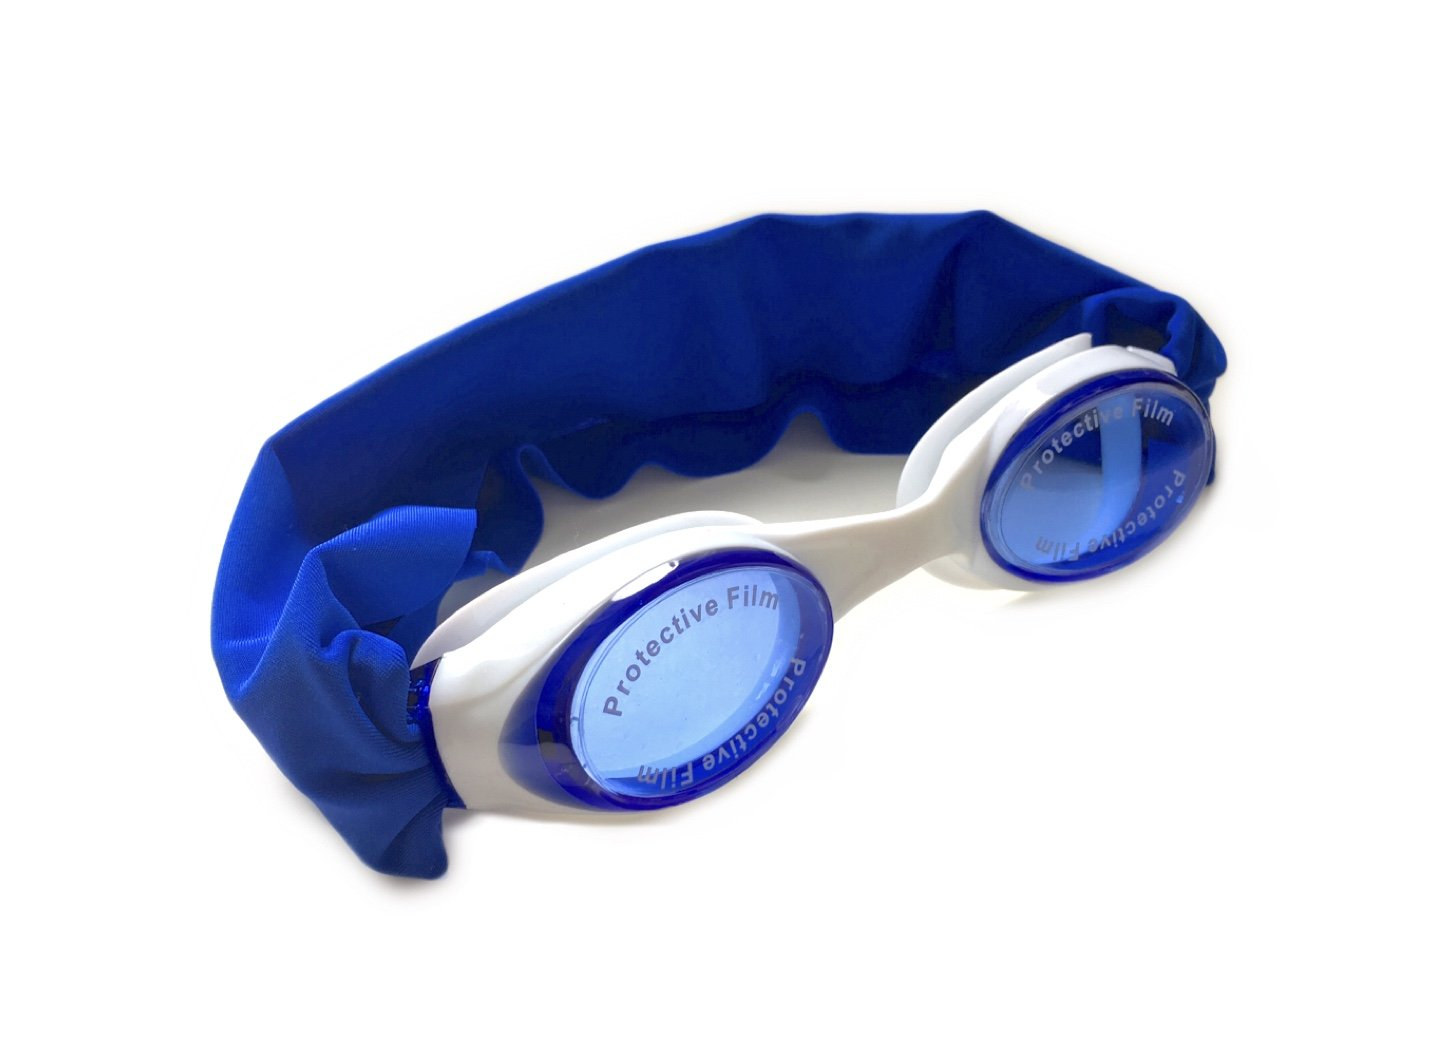 """Splash """"Royal"""" Swim Goggles - Fun Fashionable Comfortable - Fits Kids & Adults - Won't Pull Your Hair - Easy to Use - High Visibility Anti-Fog Lenses - Patent Pending"""